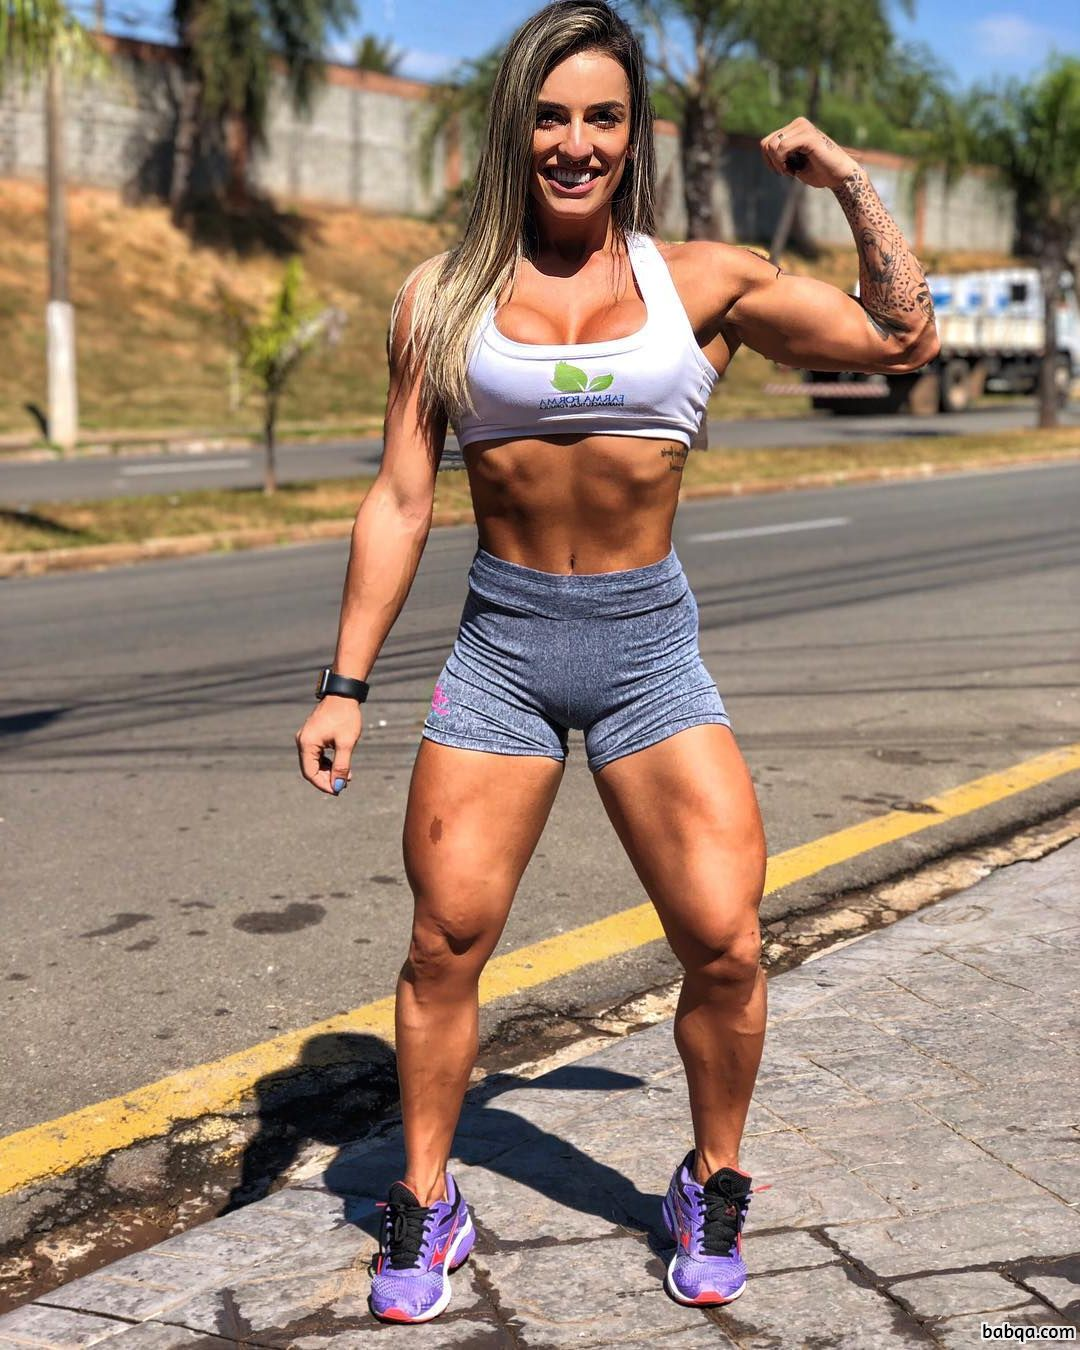 awesome female bodybuilder with muscle body and muscle biceps photo from g+